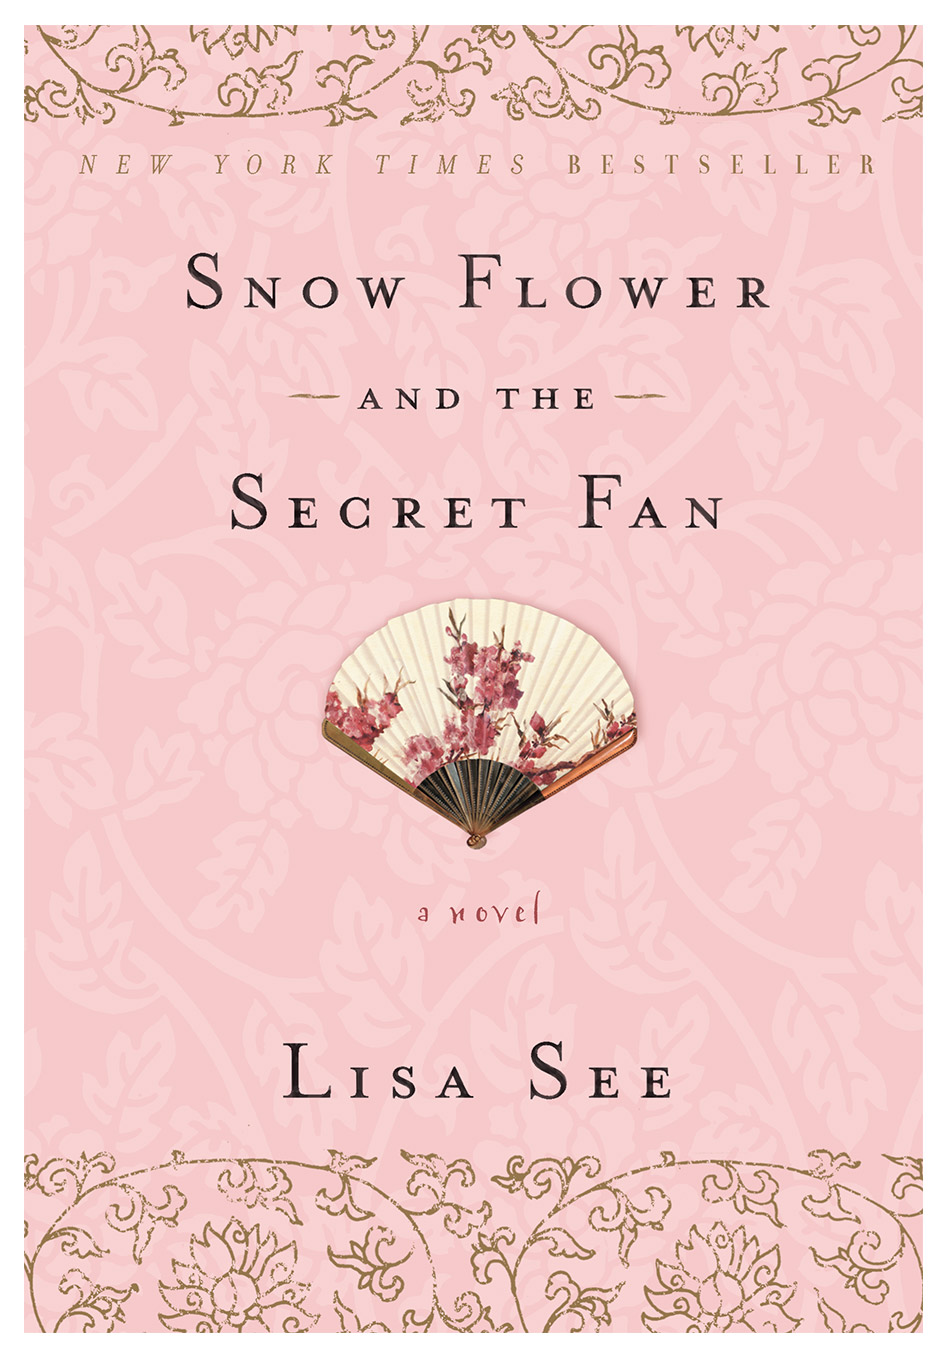 Summer Reading Snow Flower And The Secret Fan